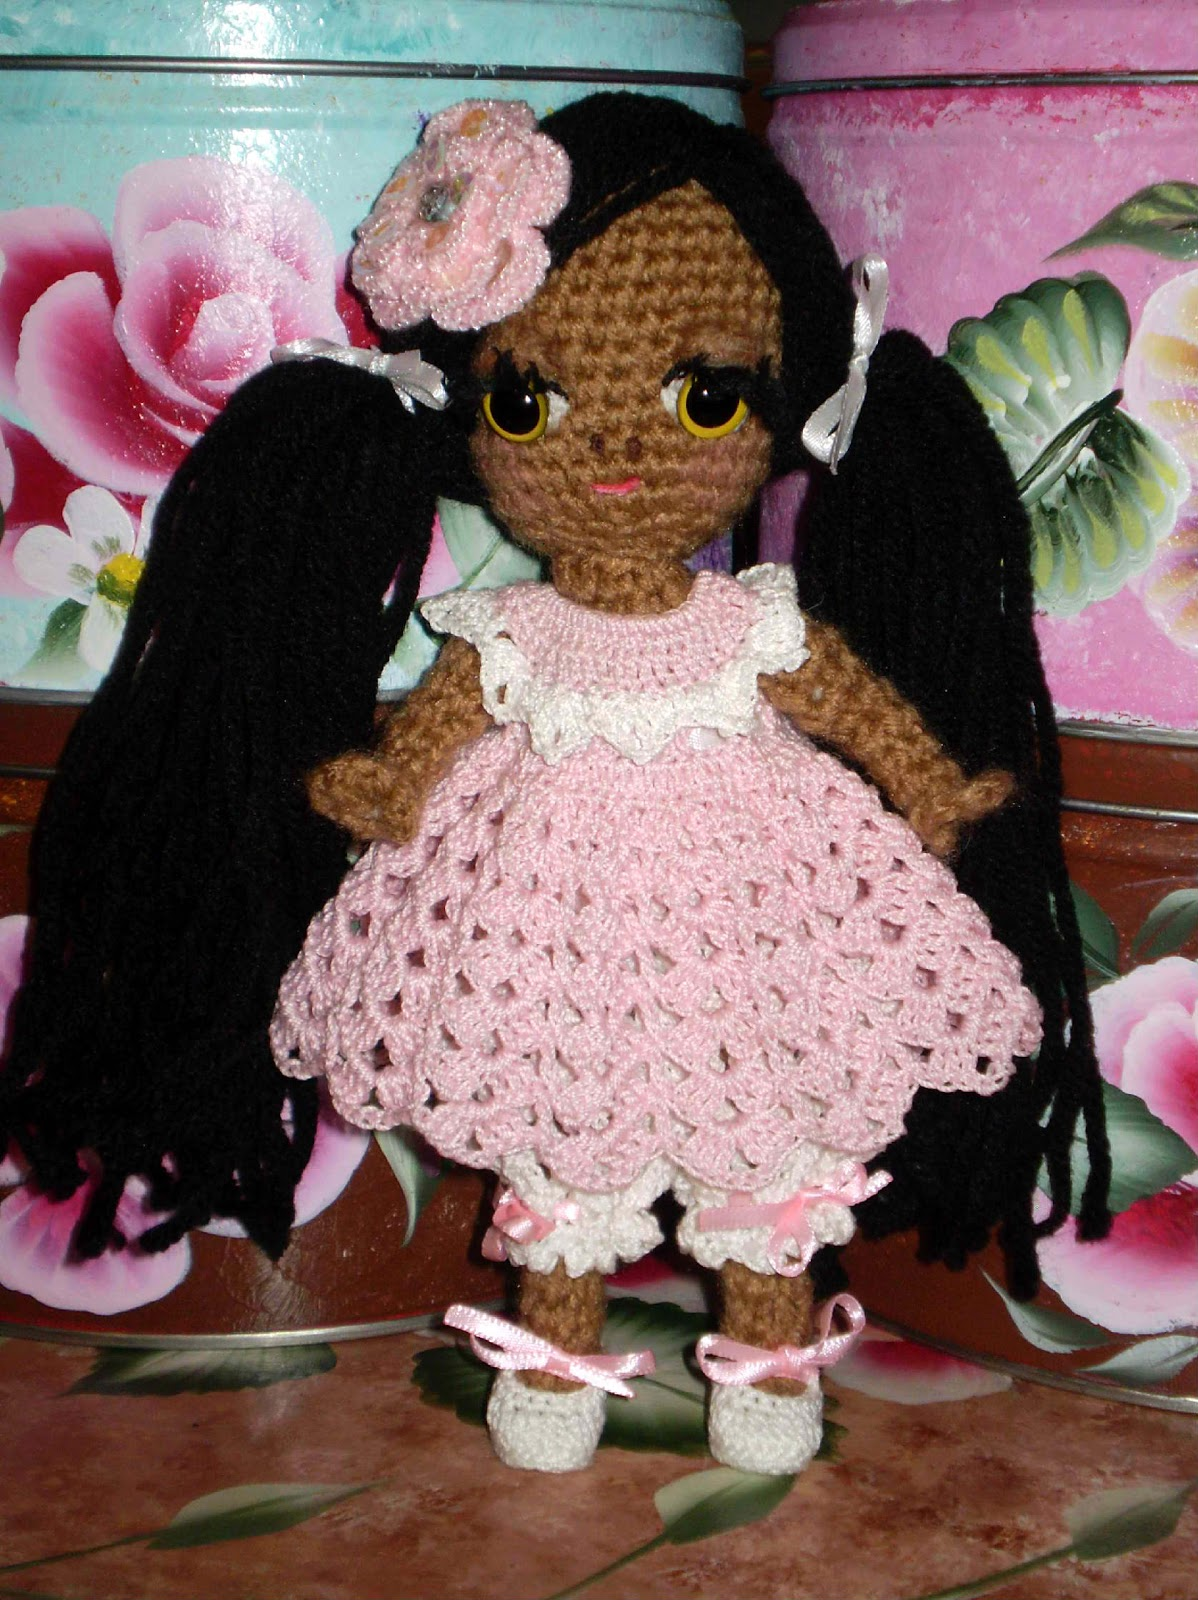 Crocheting Dolls : ... Array Of Craft Mediums: I Finally Made A Mini Free Spirit Crochet Doll